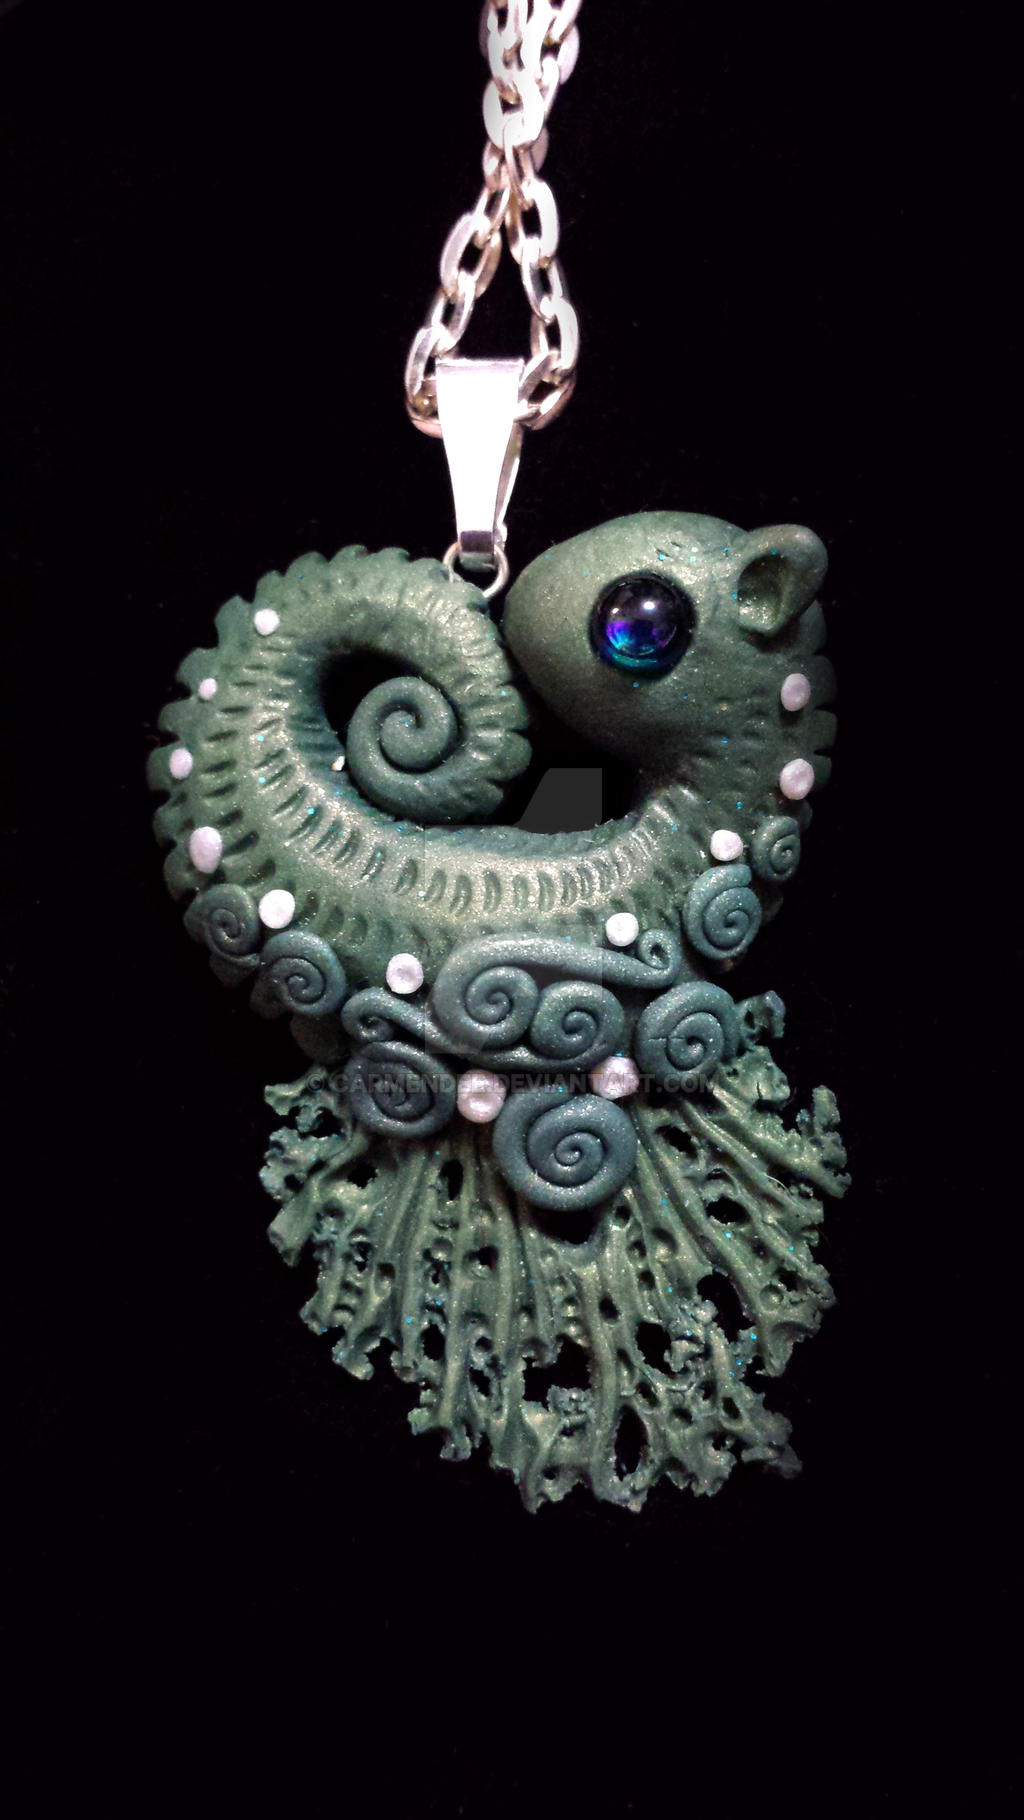 Seaweed green seahorse polymer clay pendant by carmendee on deviantart seaweed green seahorse polymer clay pendant by carmendee mozeypictures Gallery